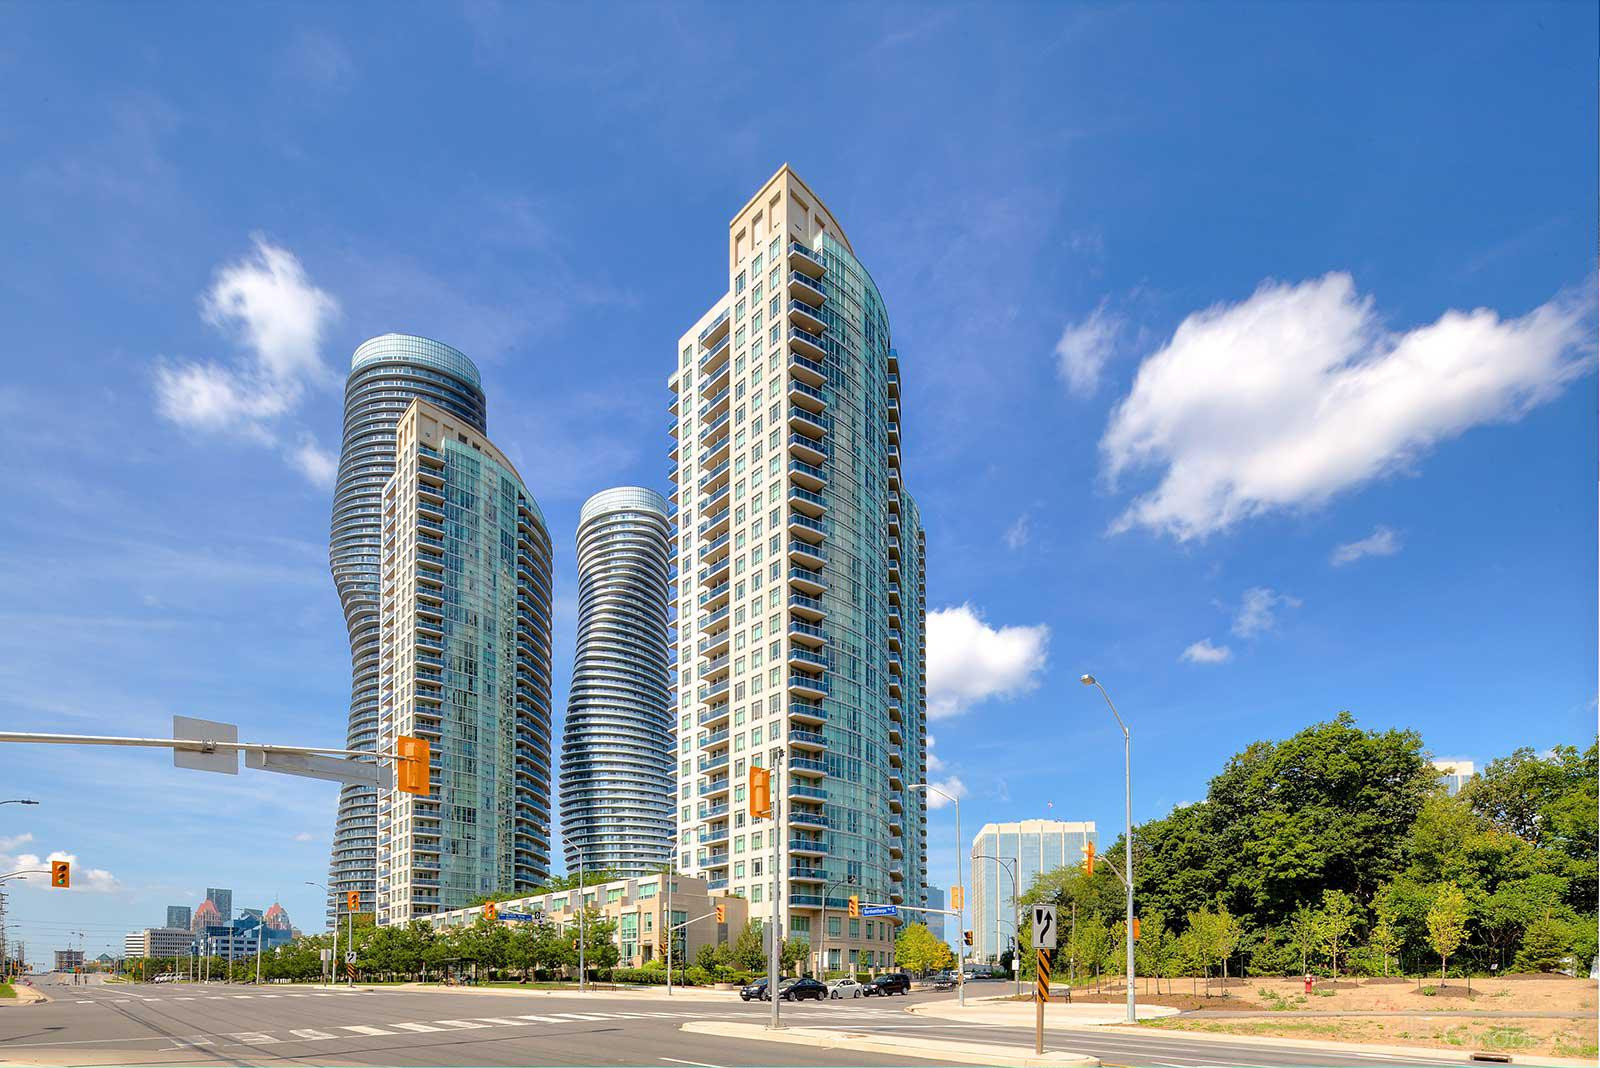 The Absolute at 90 Absolute Ave, Mississauga 0